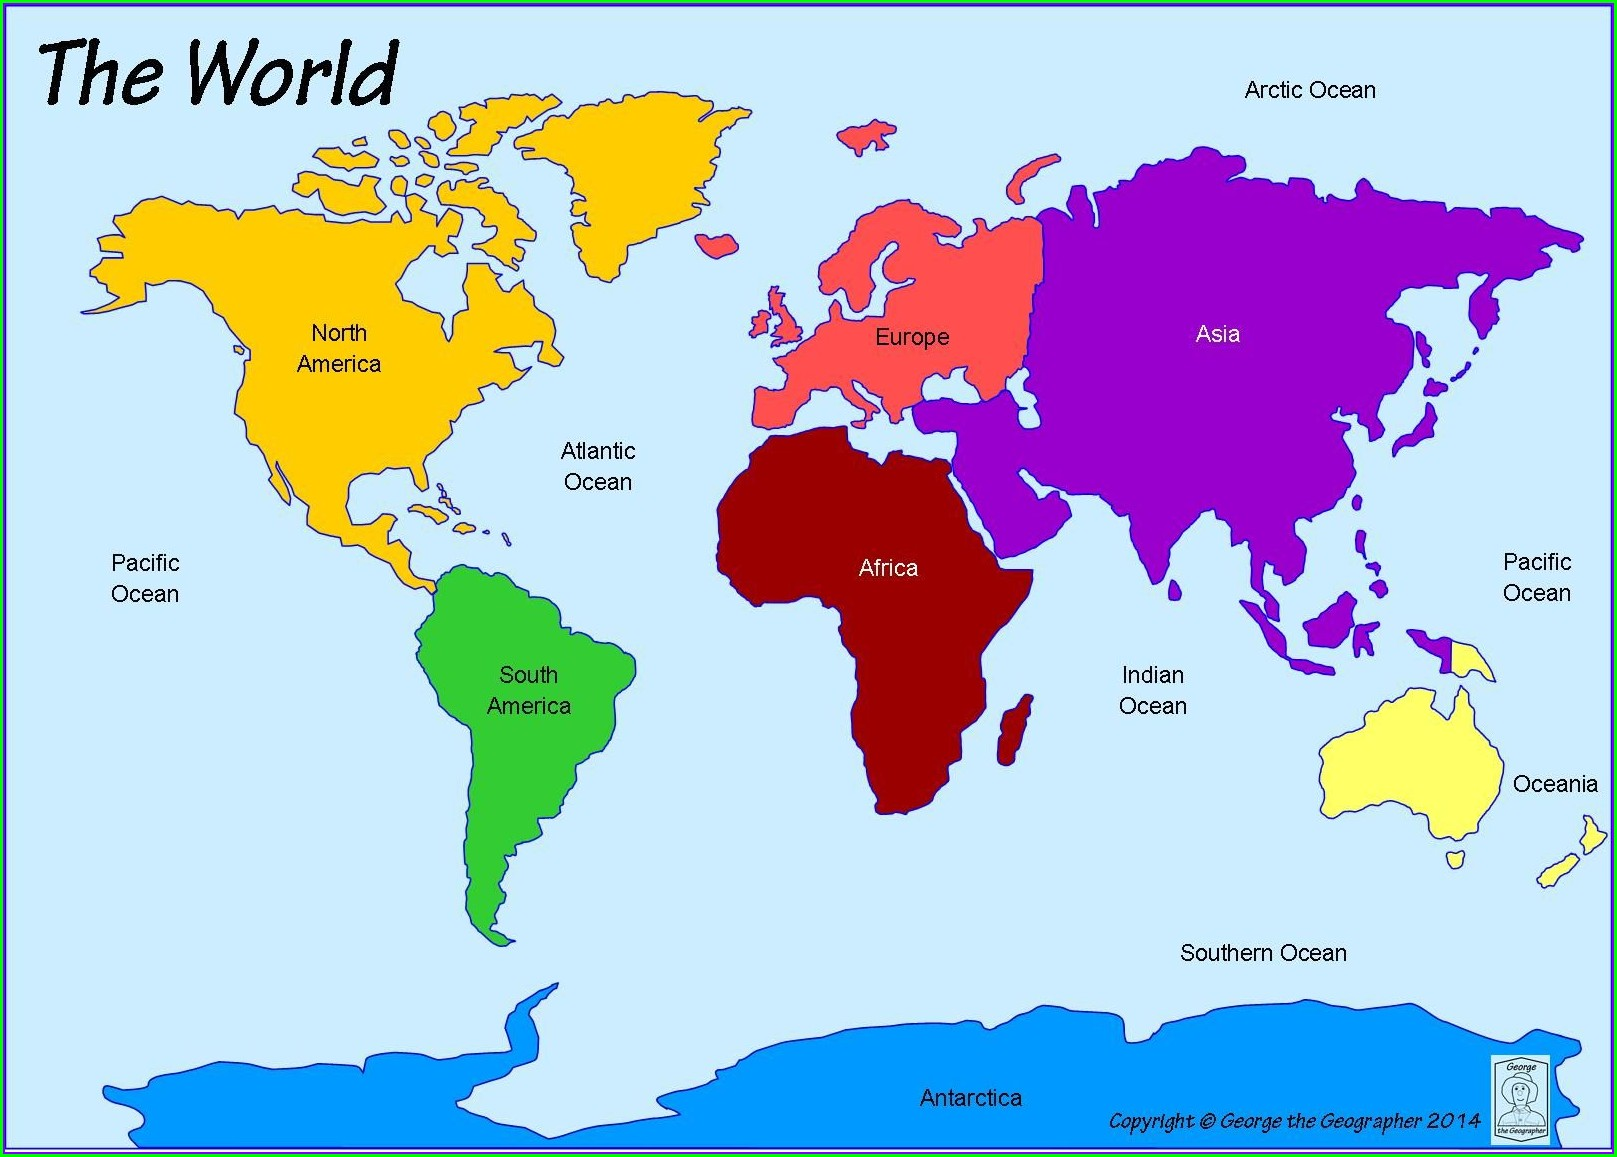 Free Printable World Map With Continents And Oceans Labeled